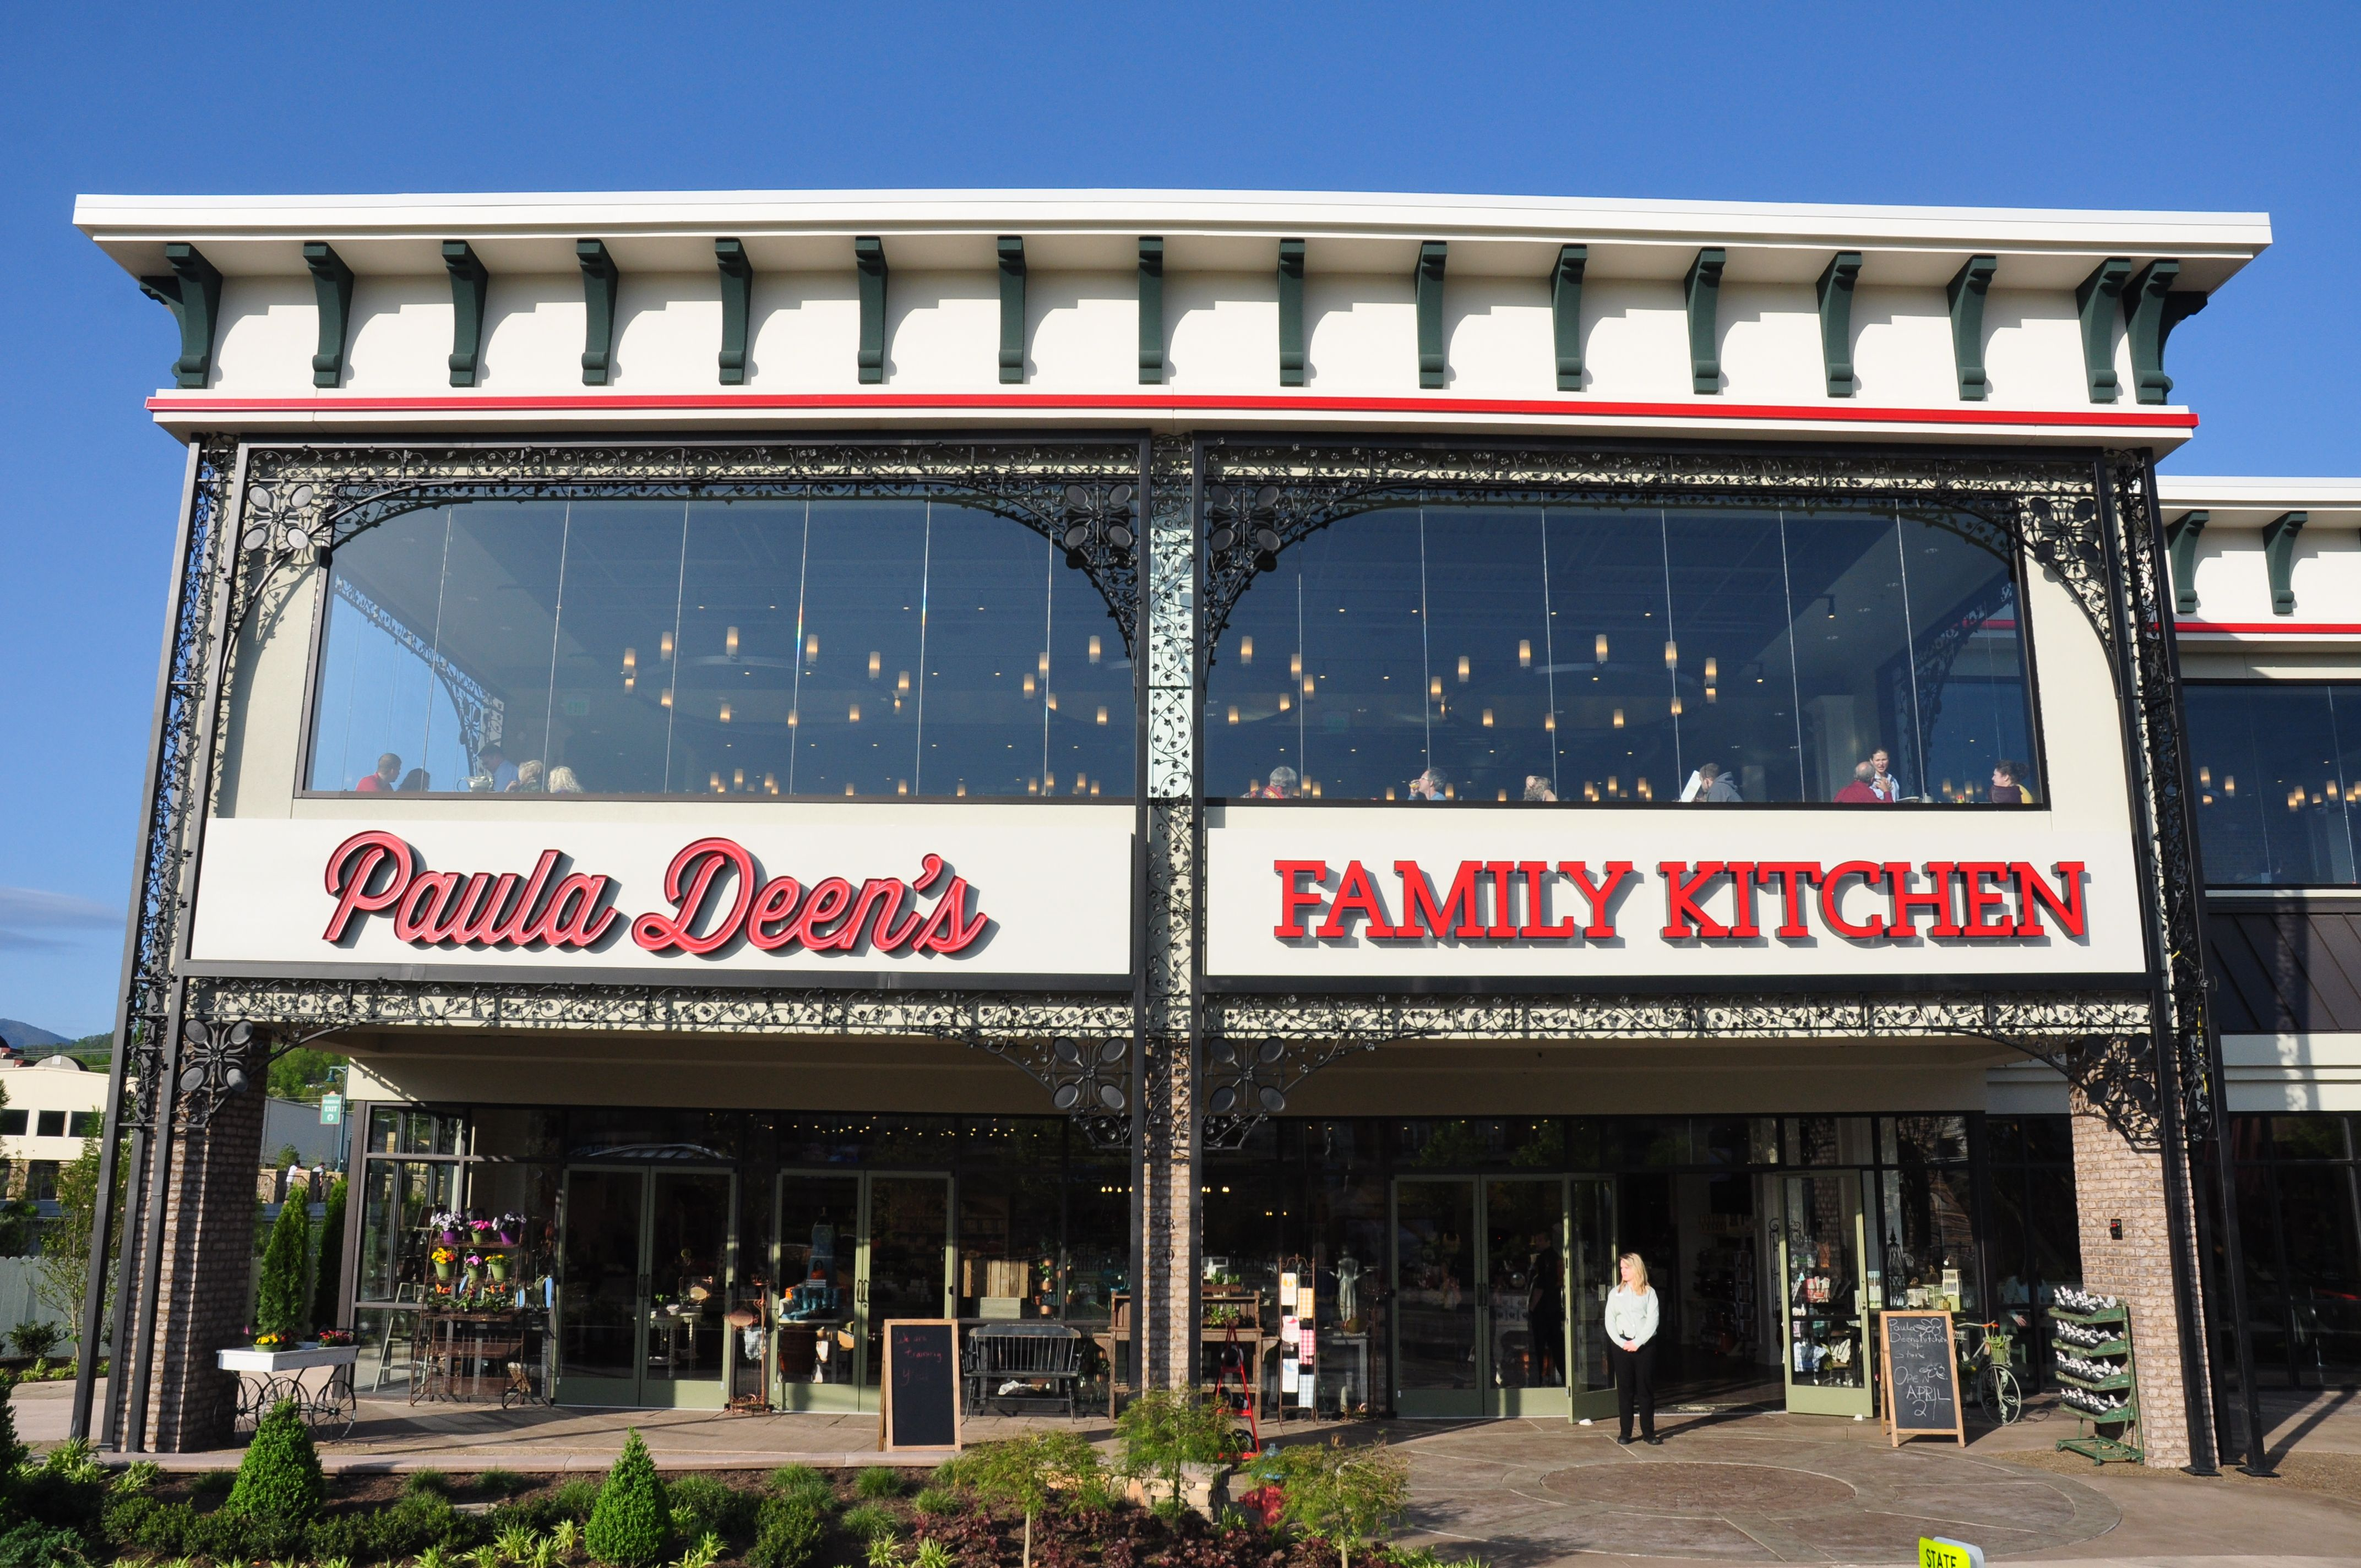 Paula Deen's Family Kitchen in Pigeon is located at